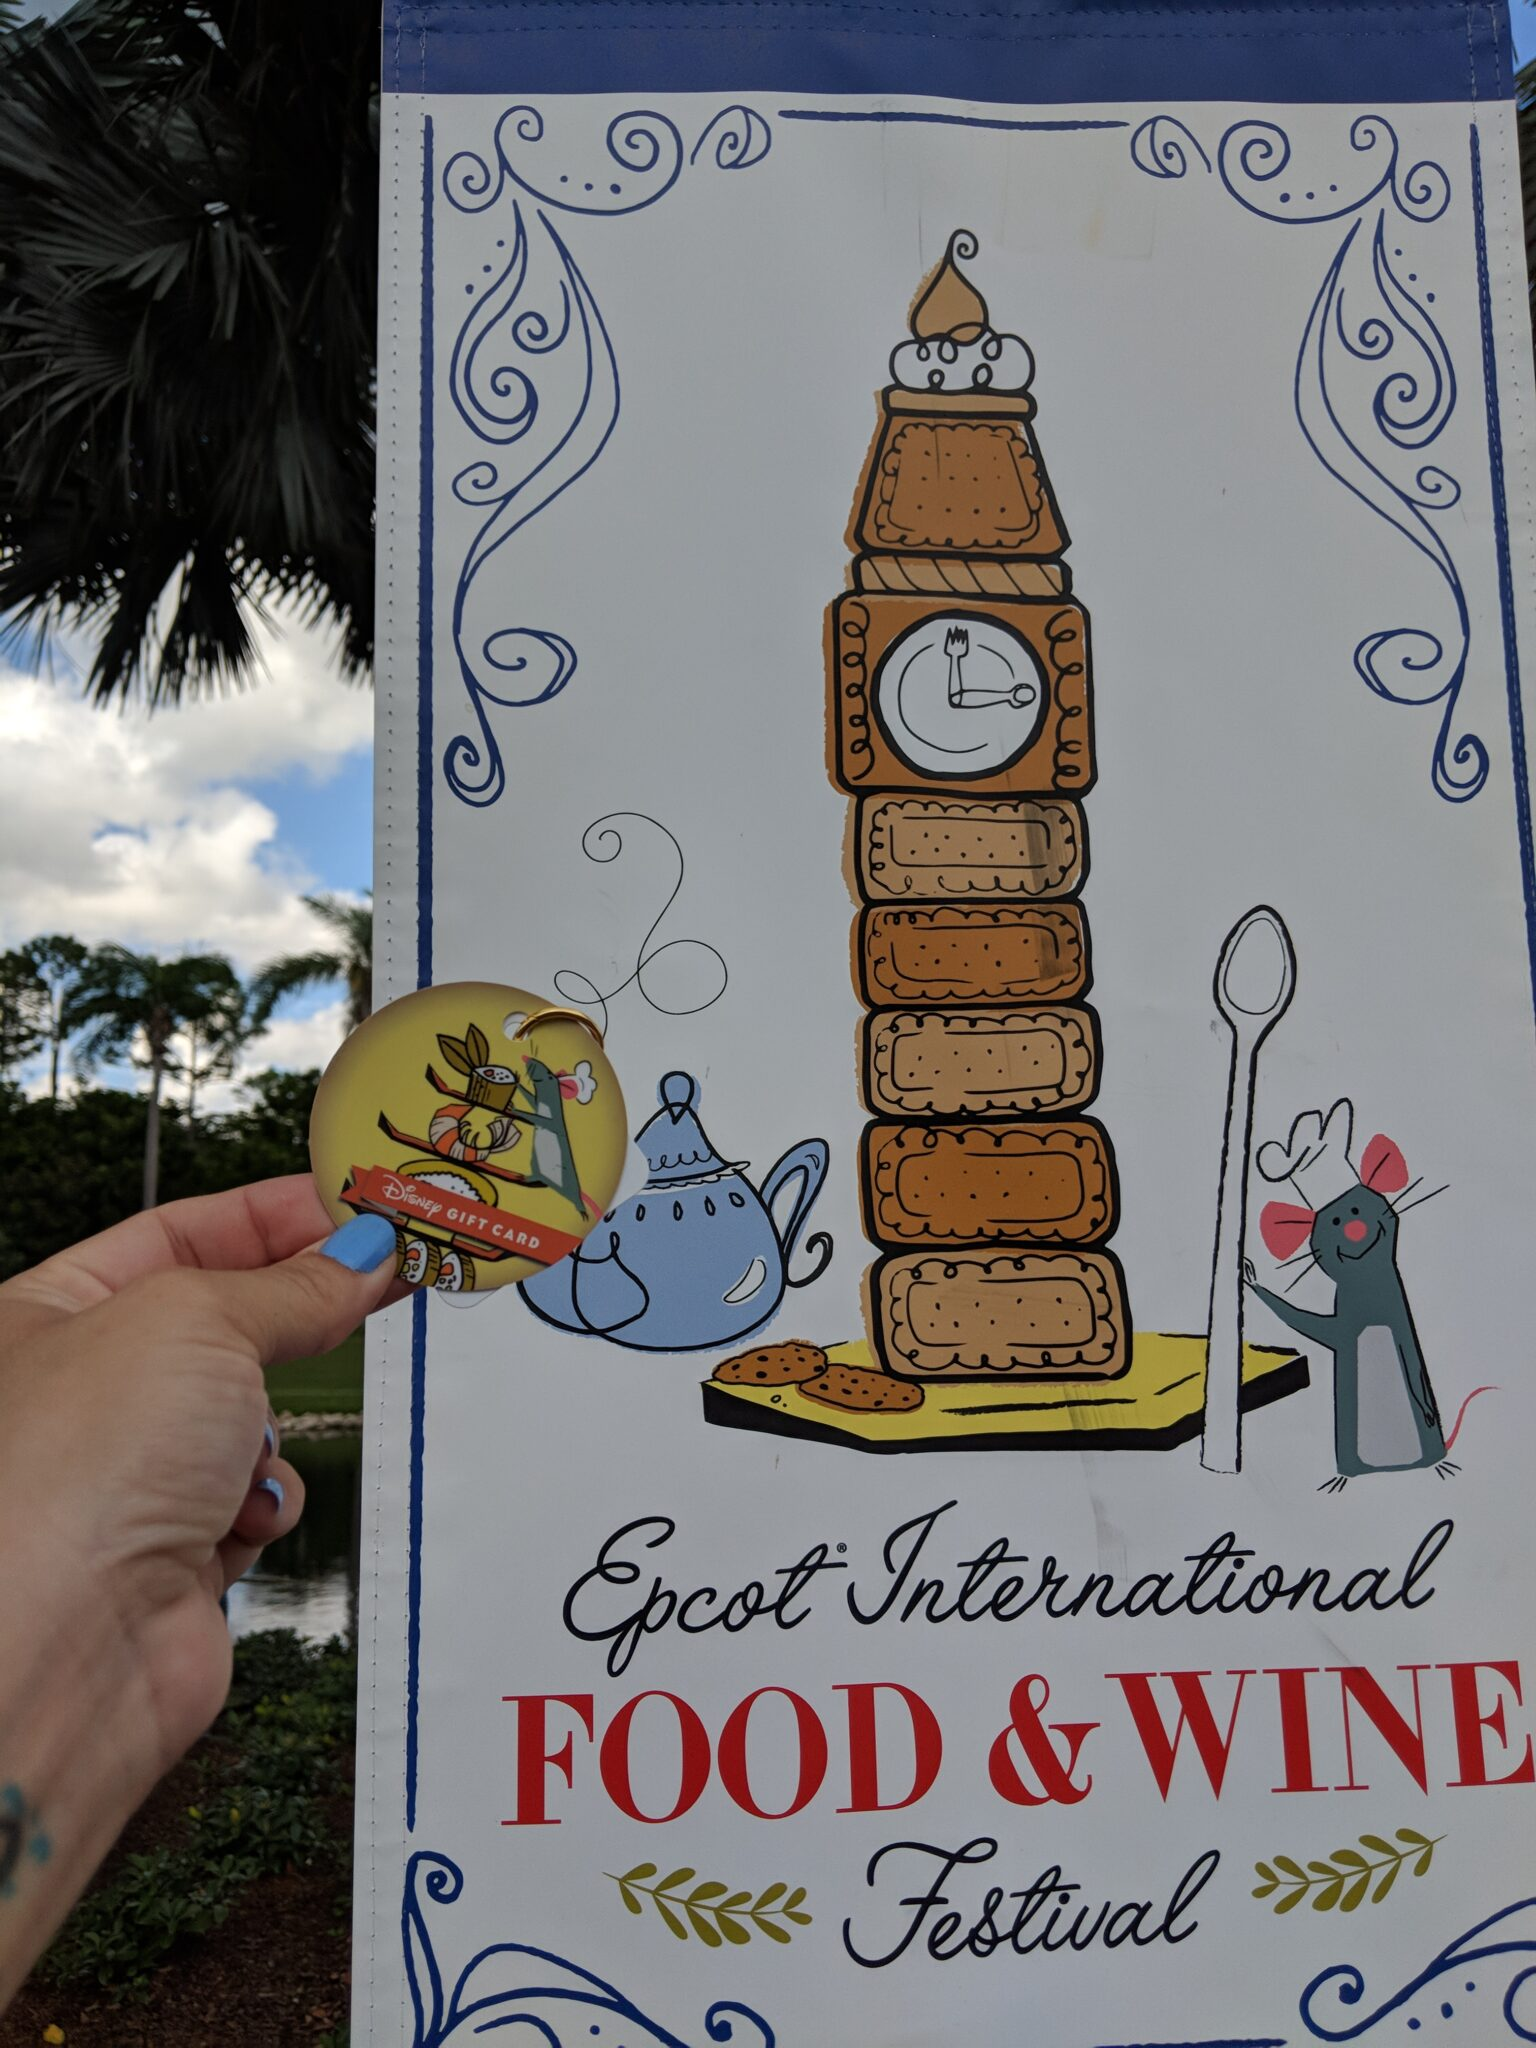 Find out how we manged to stay under $100 at Epcot Food & Wine Festival.